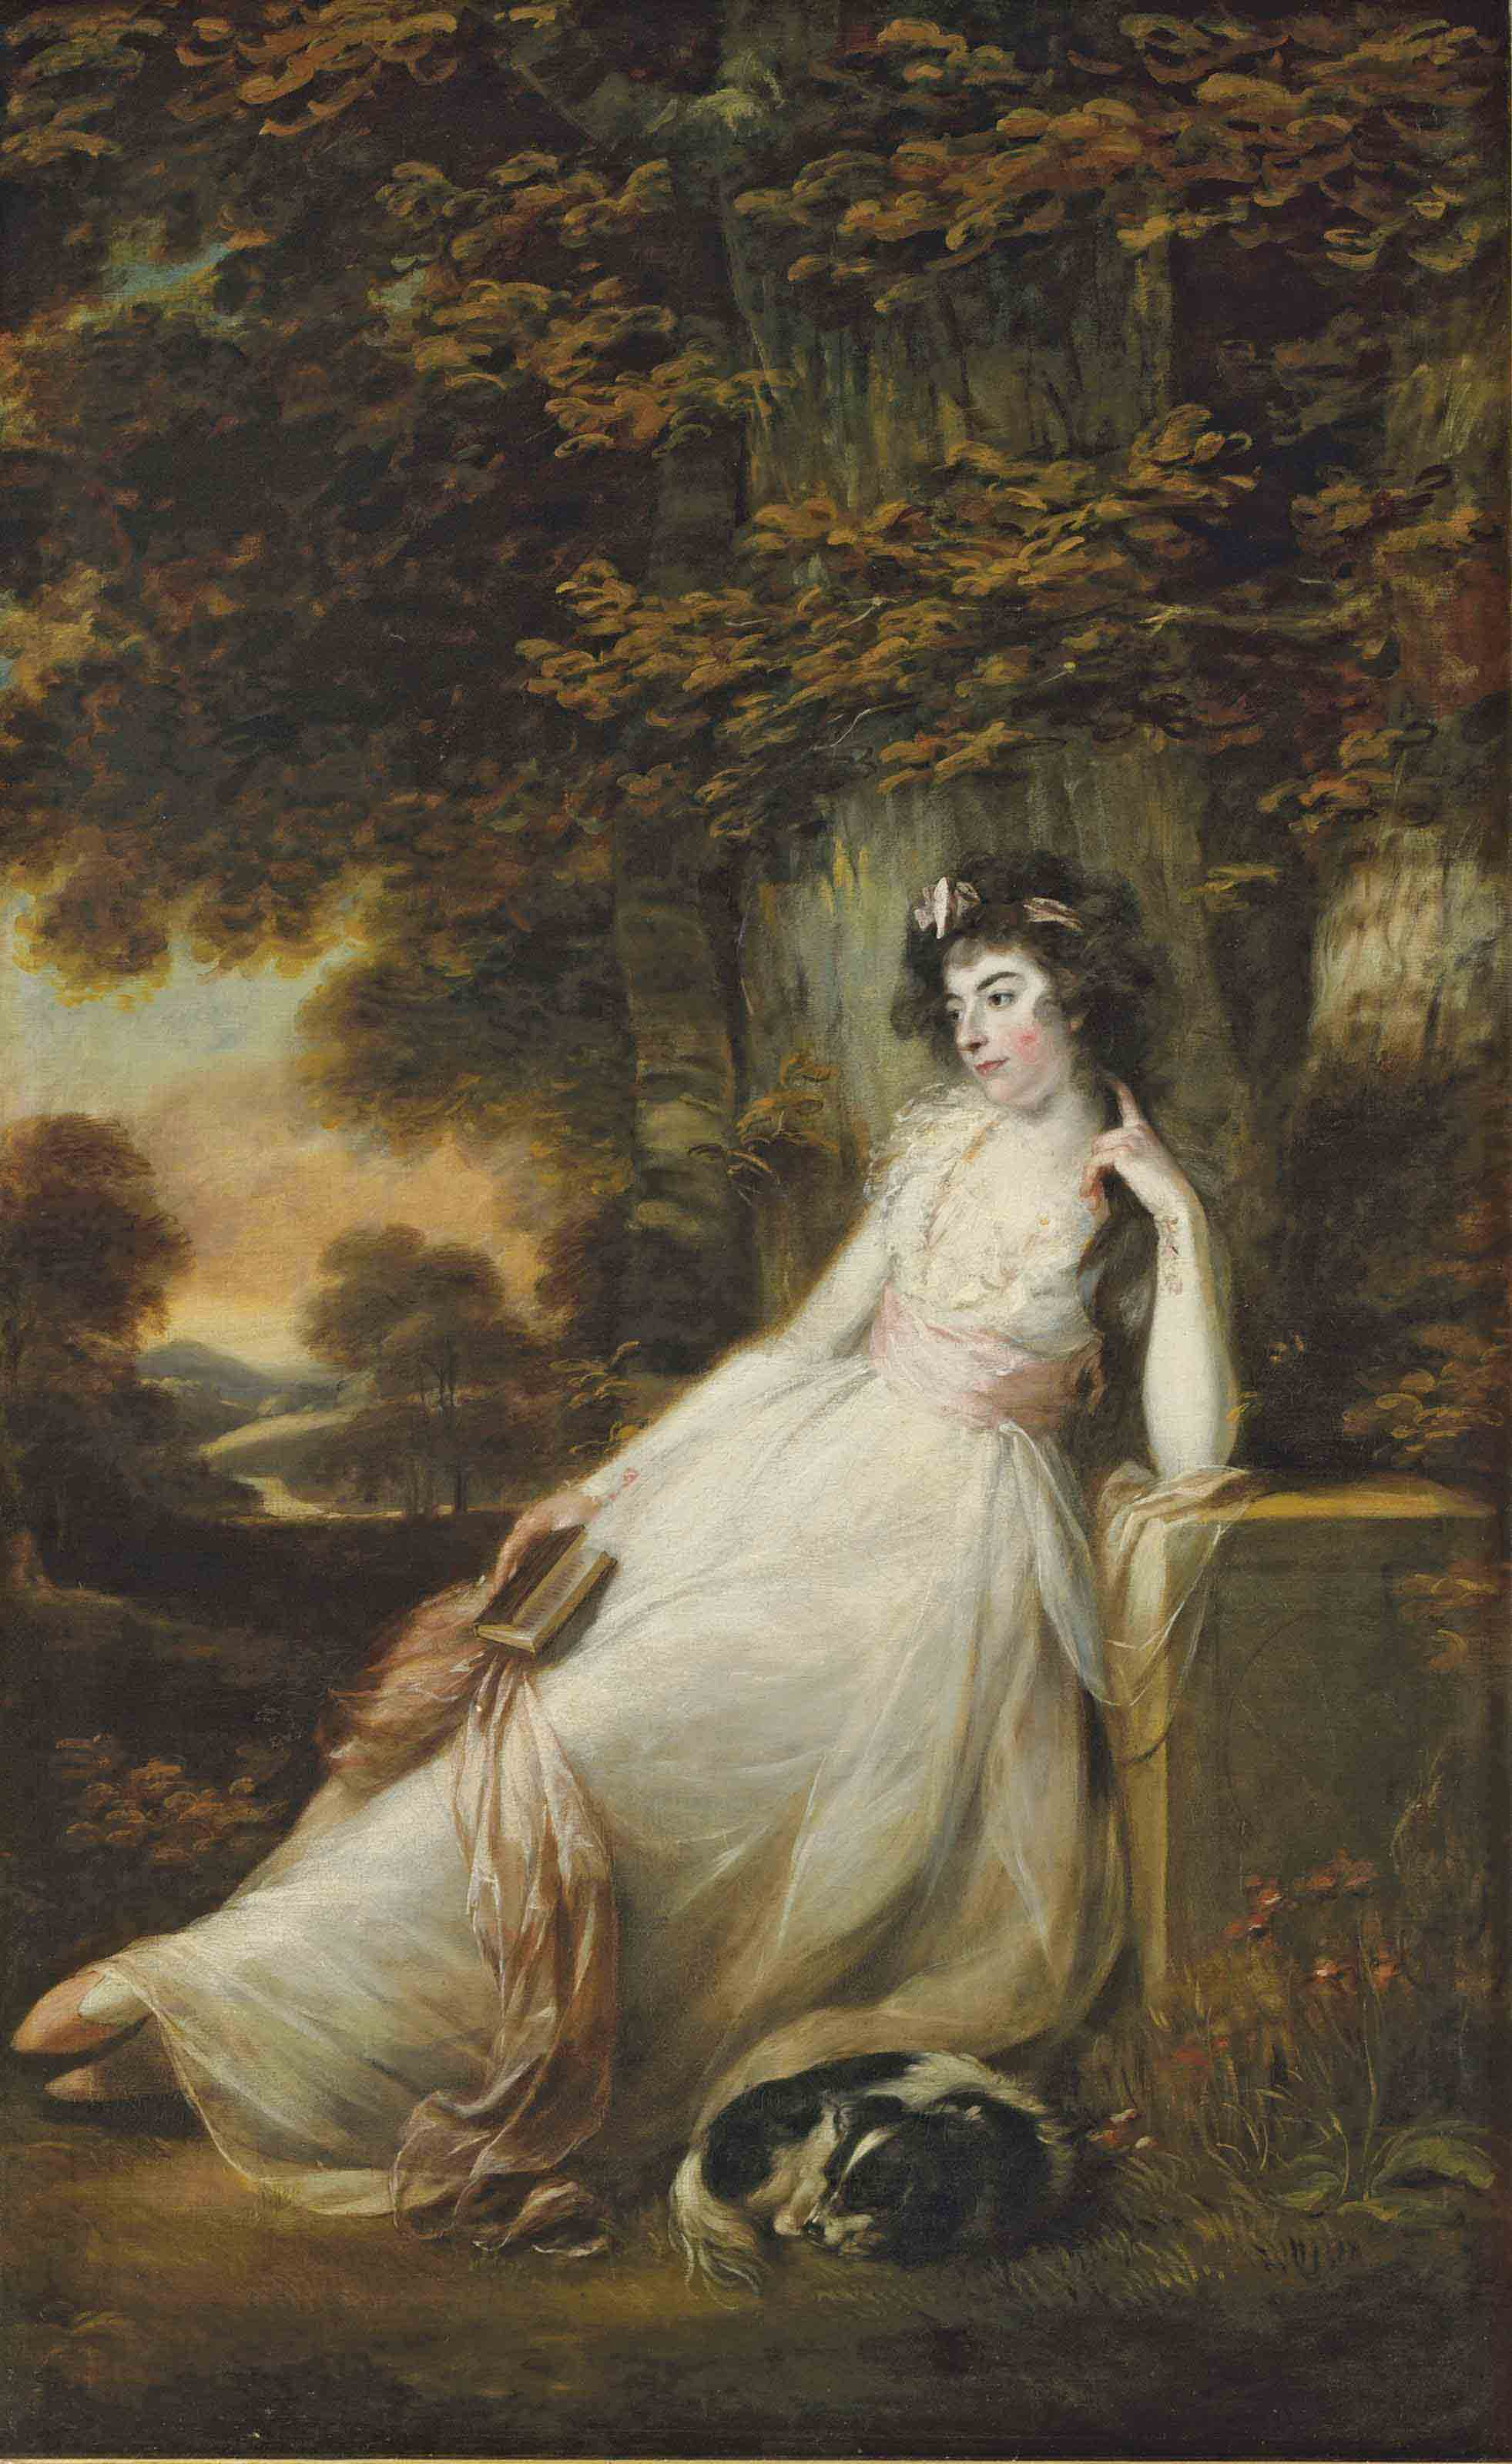 Portrait of Miss S.D. Chambers, full-length, in a white dress, seated with a dog, in a river landscape